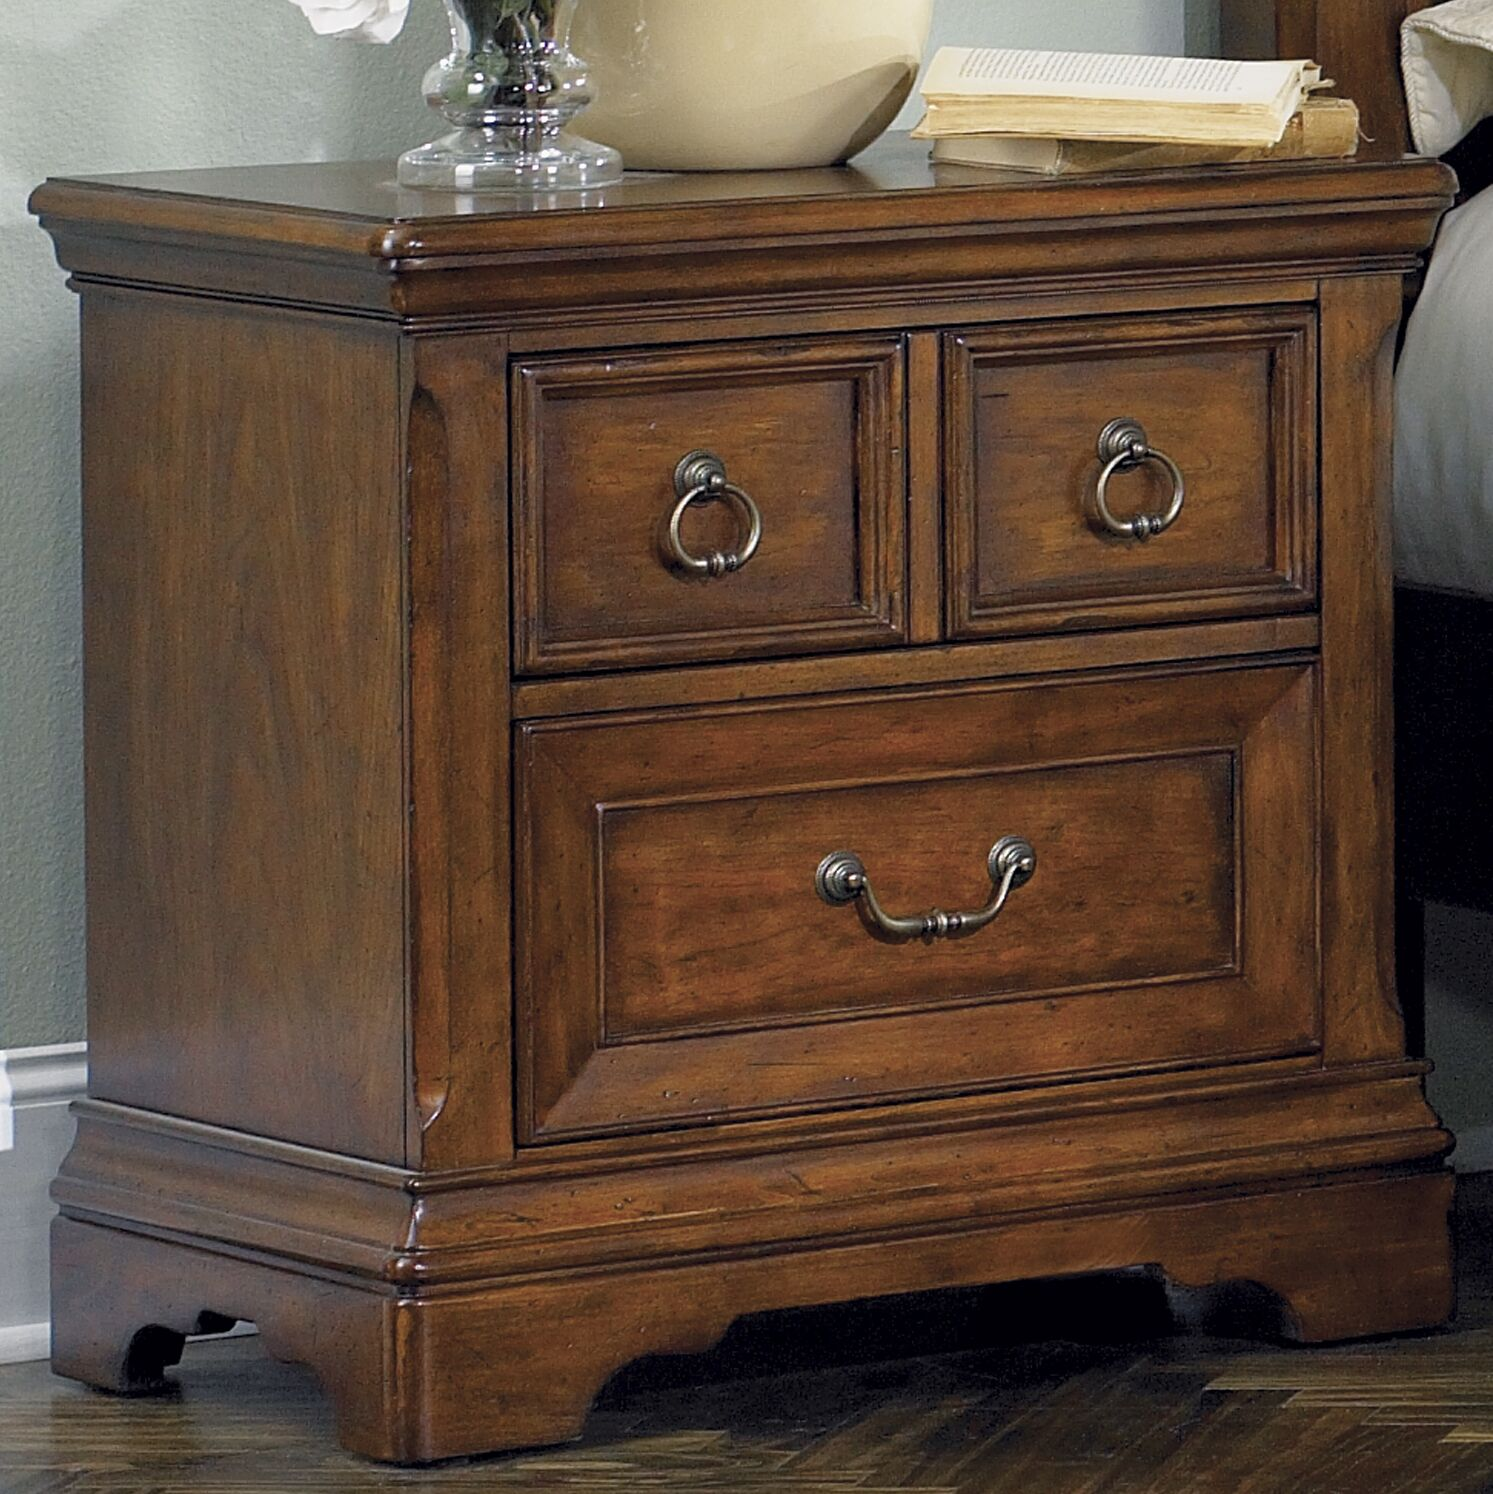 Features: -Dust proofing on bottom case.-Antique brass bail pull and ring hardware.-Full extension metal side drawer glides.-Beaded molding.-Bracket feet.-French and English dovetail construction.-Chestnut finish.-Scrolled metal accents.-Laurelwood co...